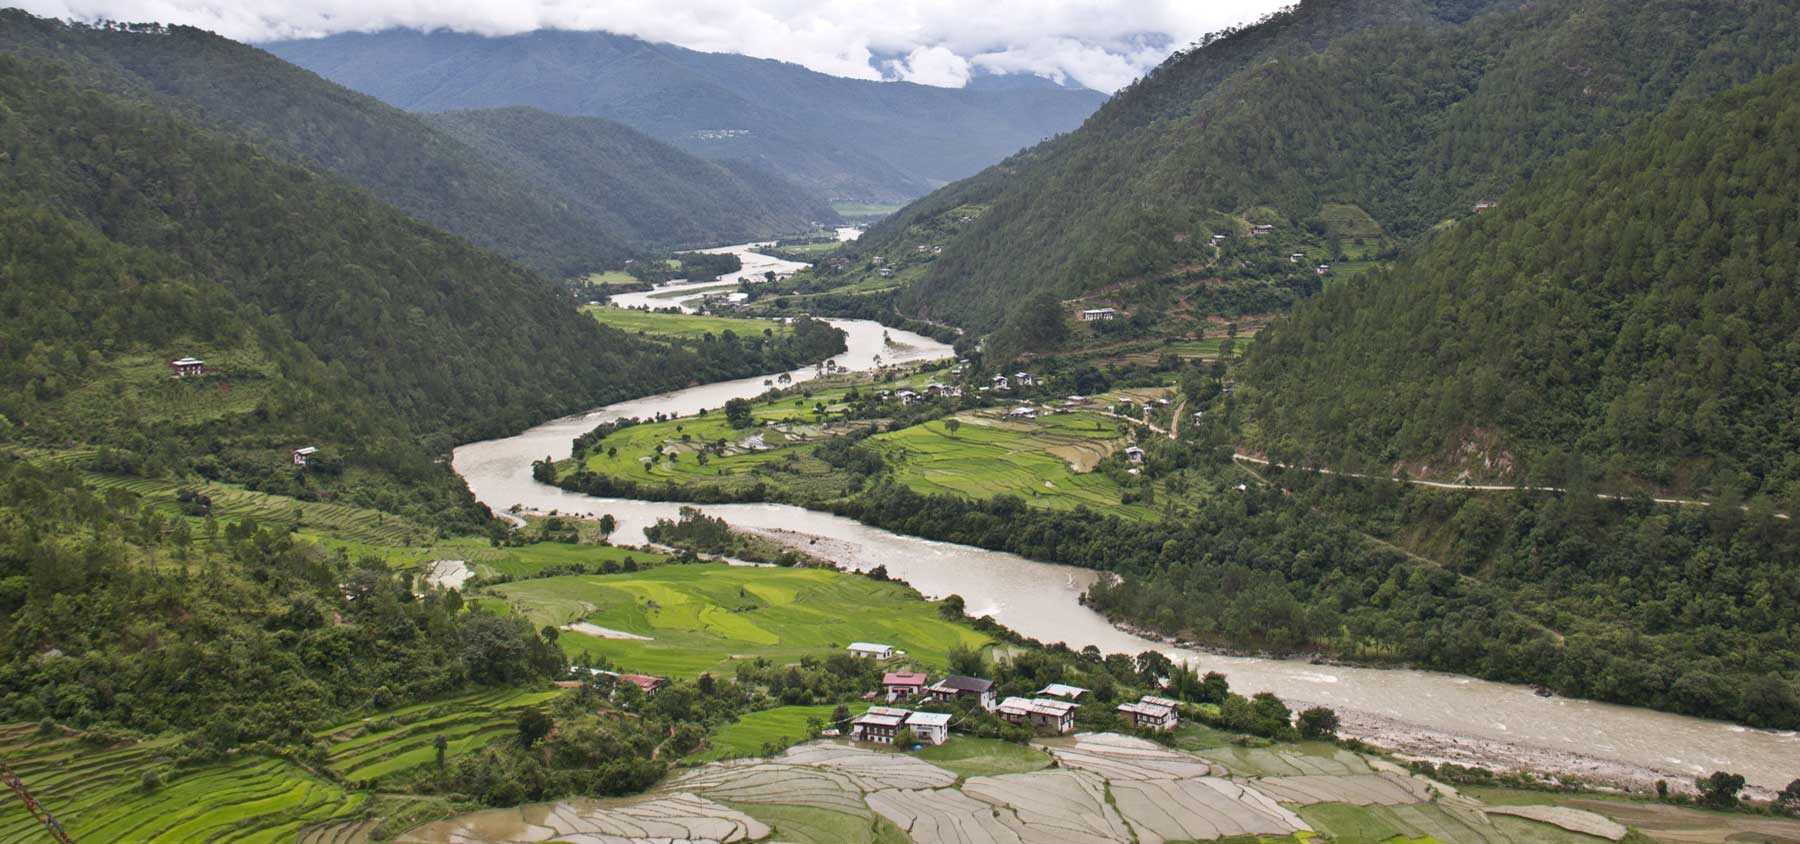 View of Punakha Valley from Khamsum Yuelay Namgyel Chorten, Punakha, Bhutan